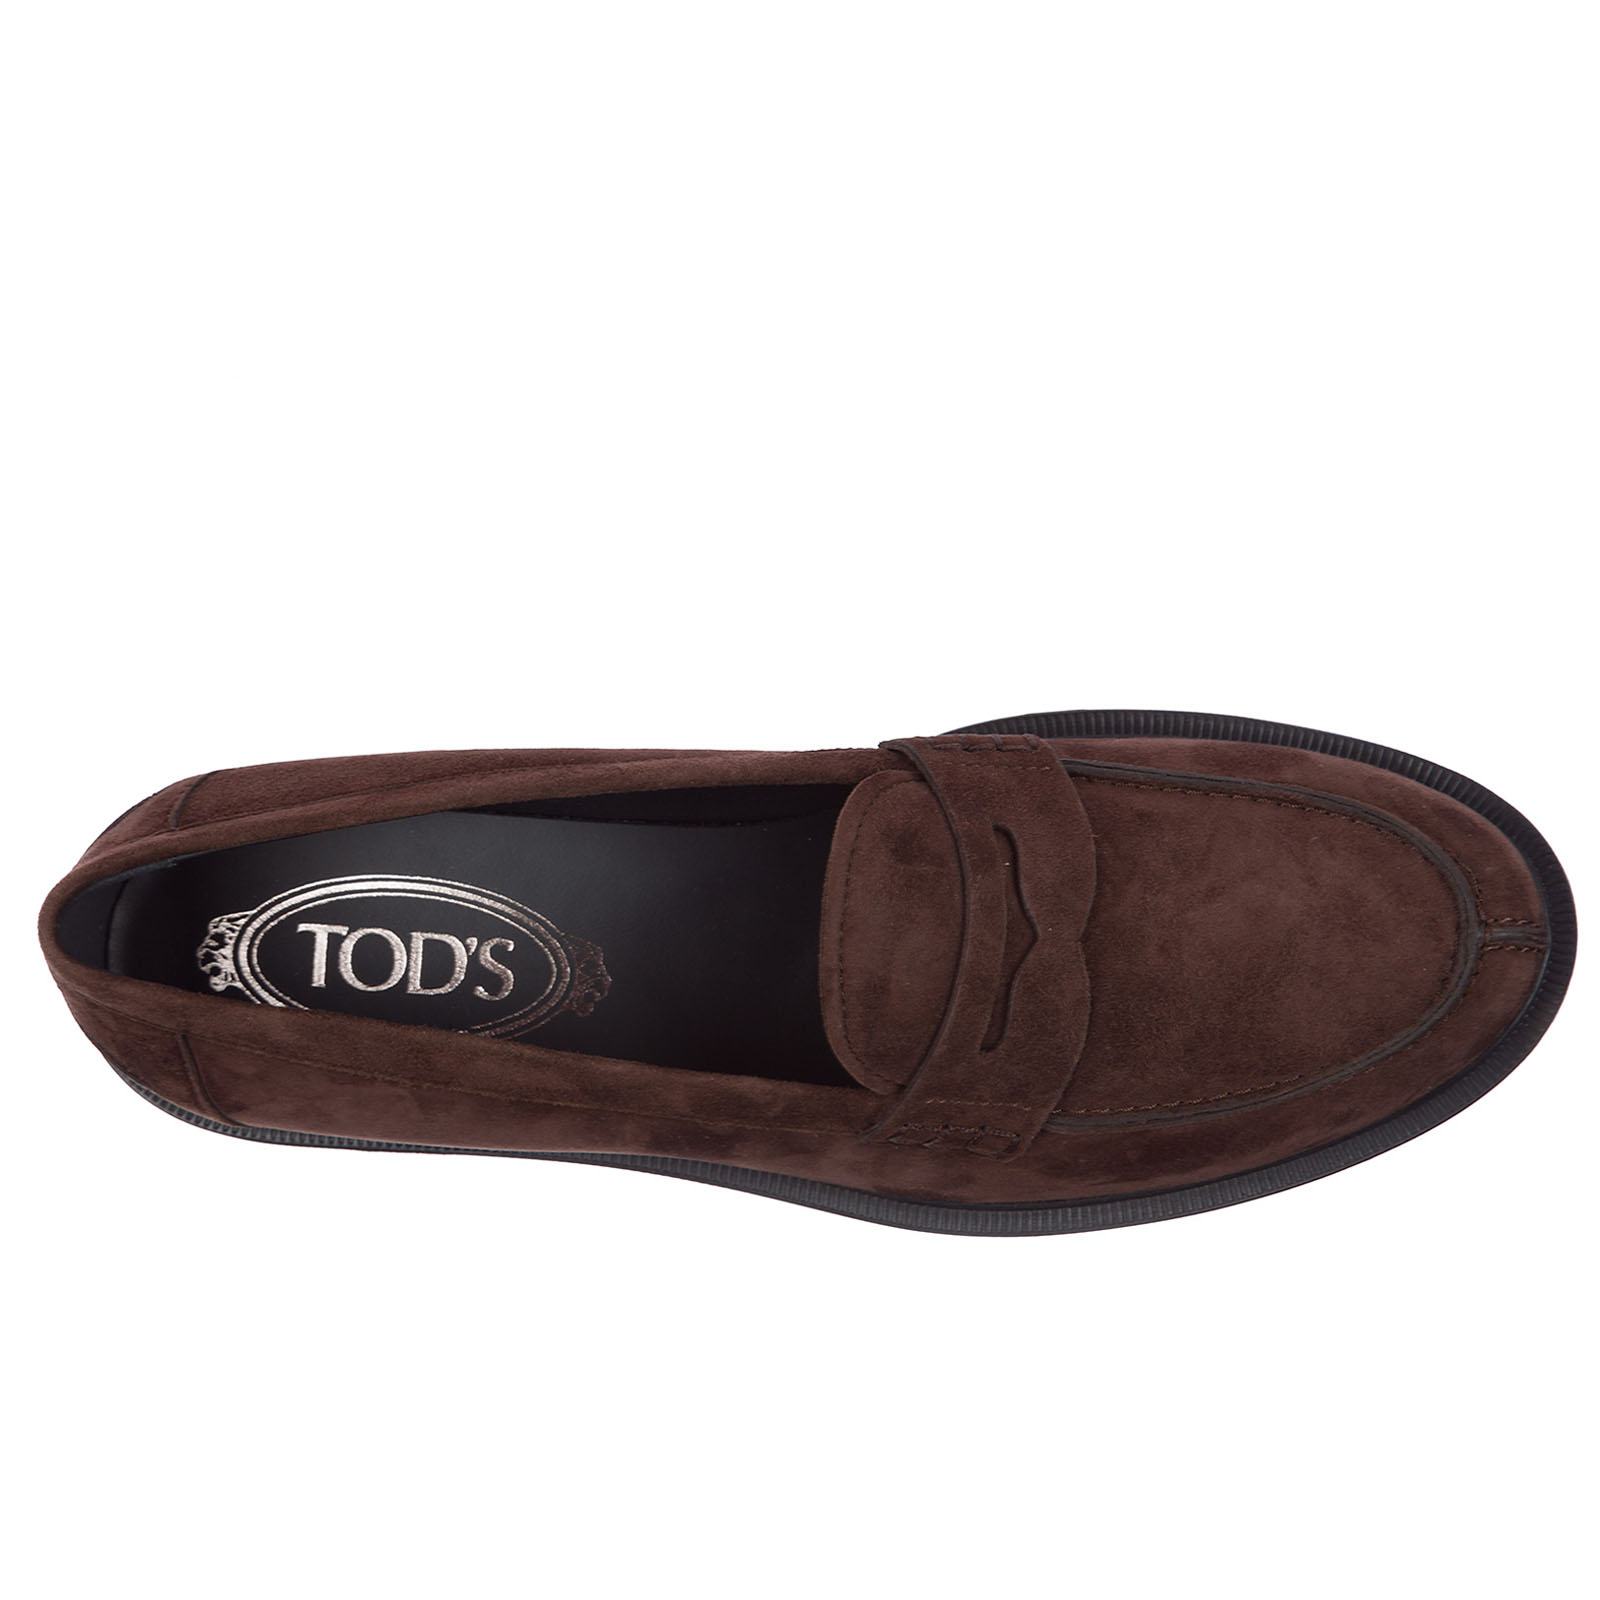 Damen wildleder mokassins slipper